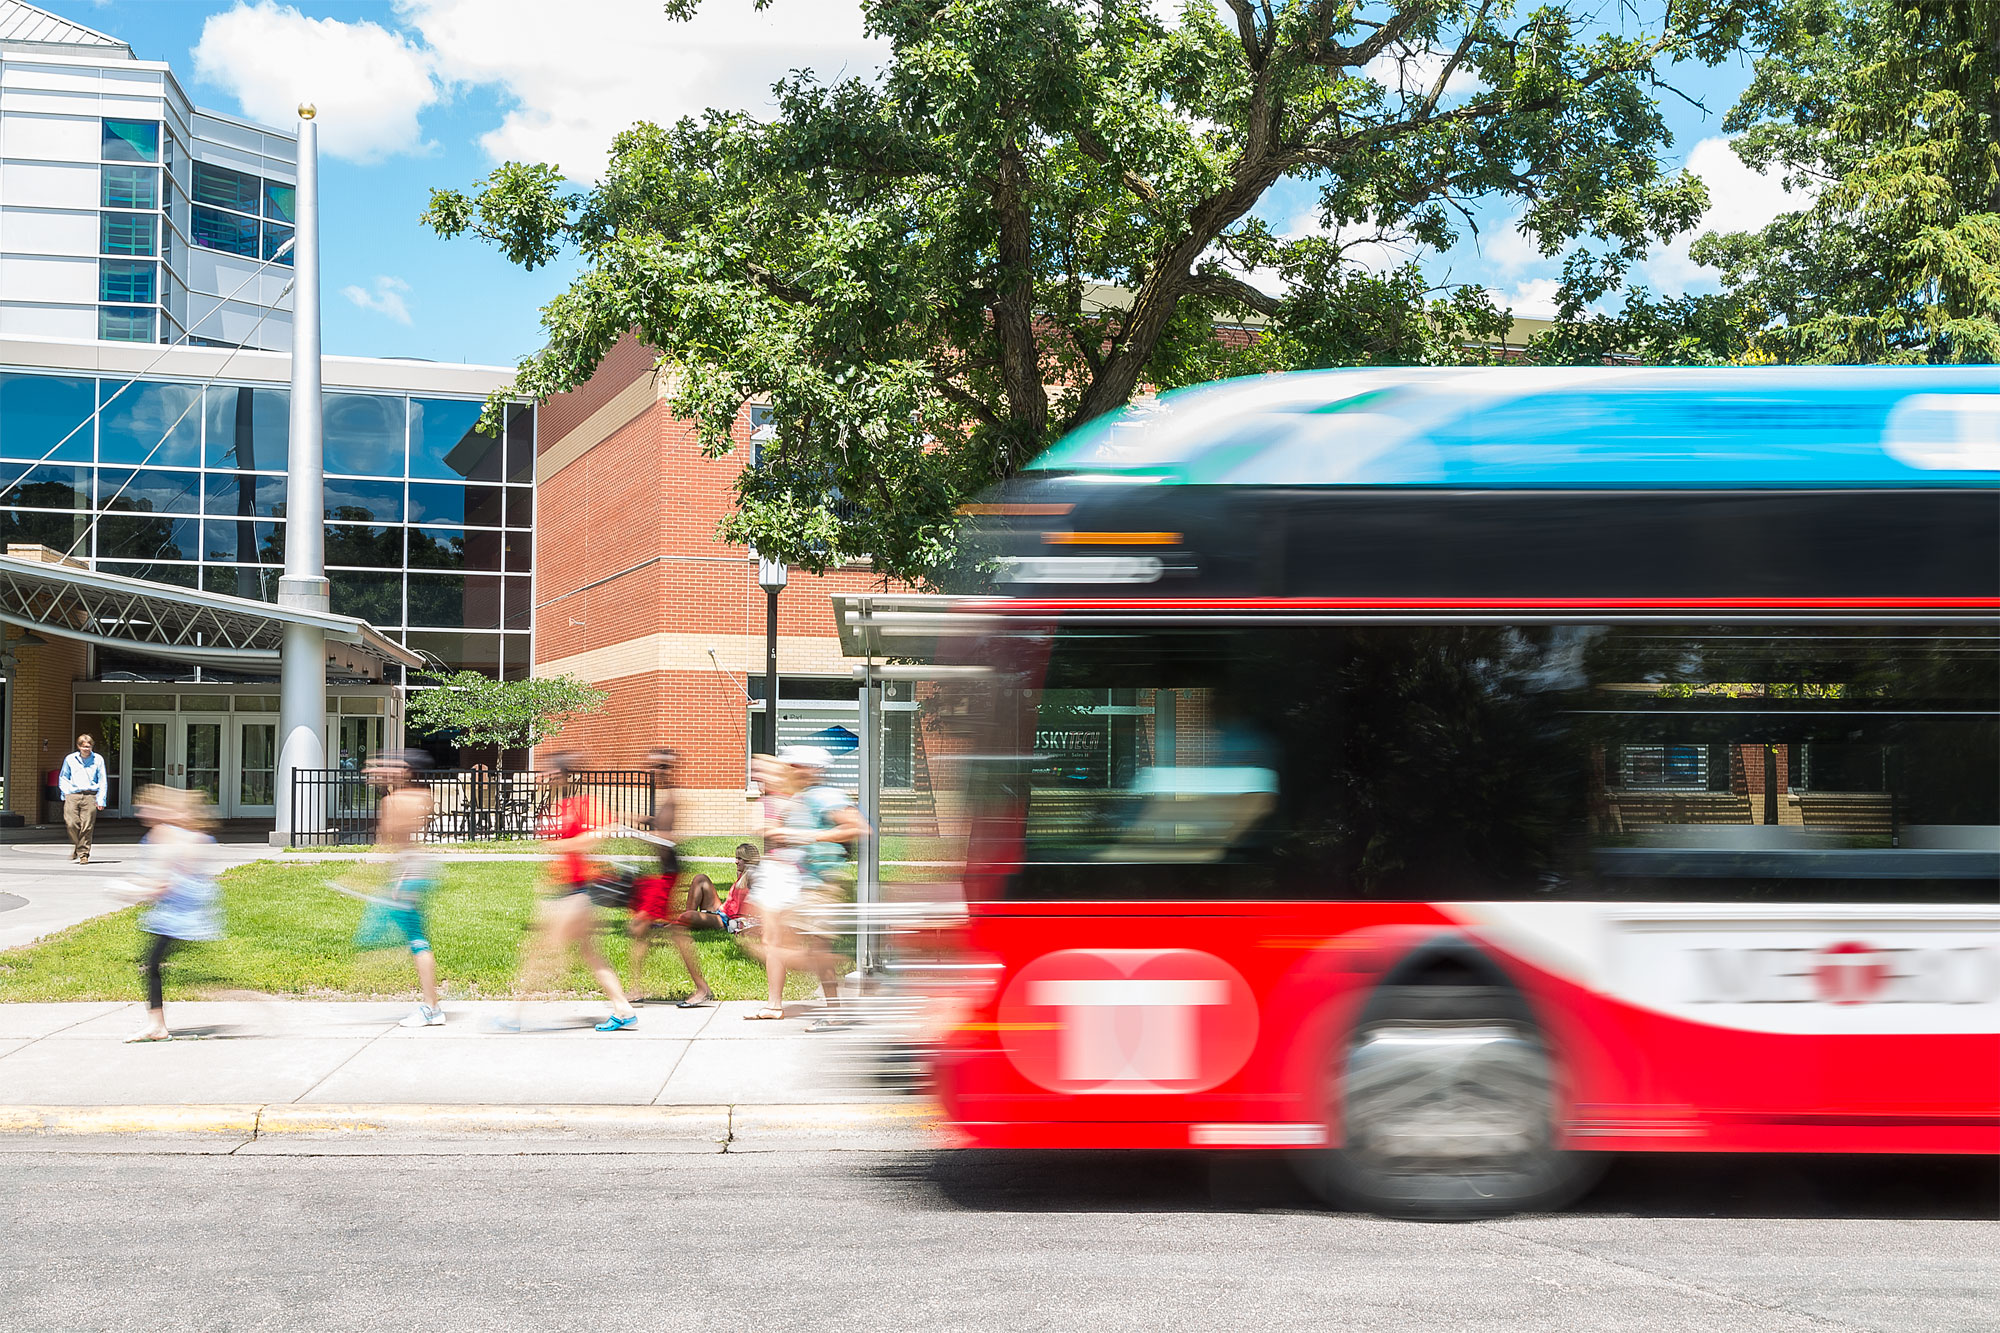 Metro Bus Arriving at St. Cloud State University